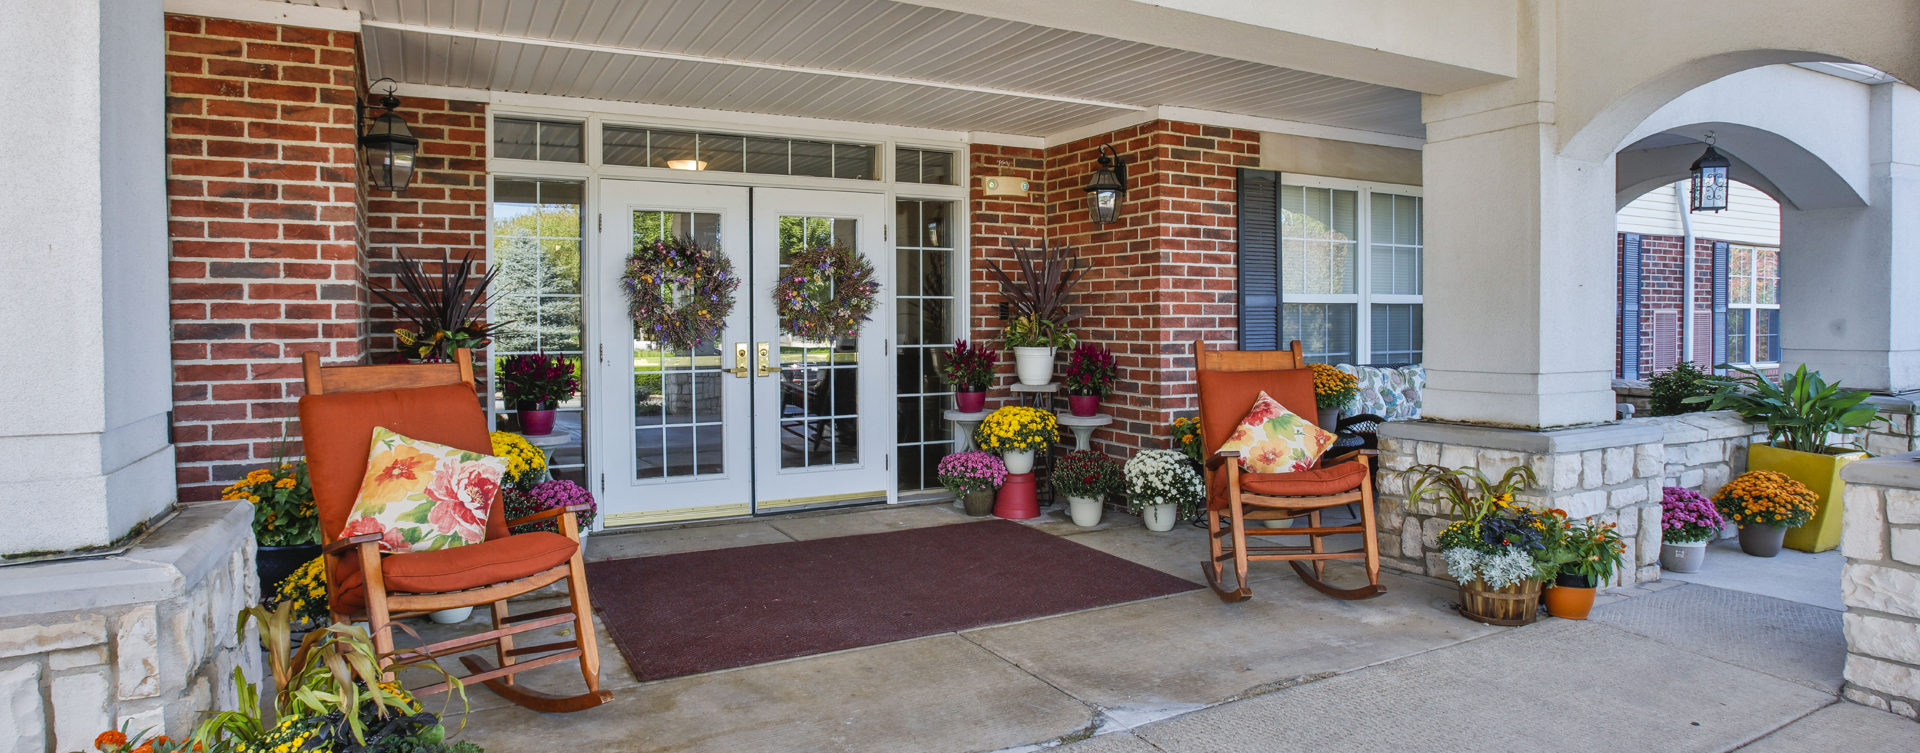 Relax in your favorite chair on the porch at Bickford of Peoria